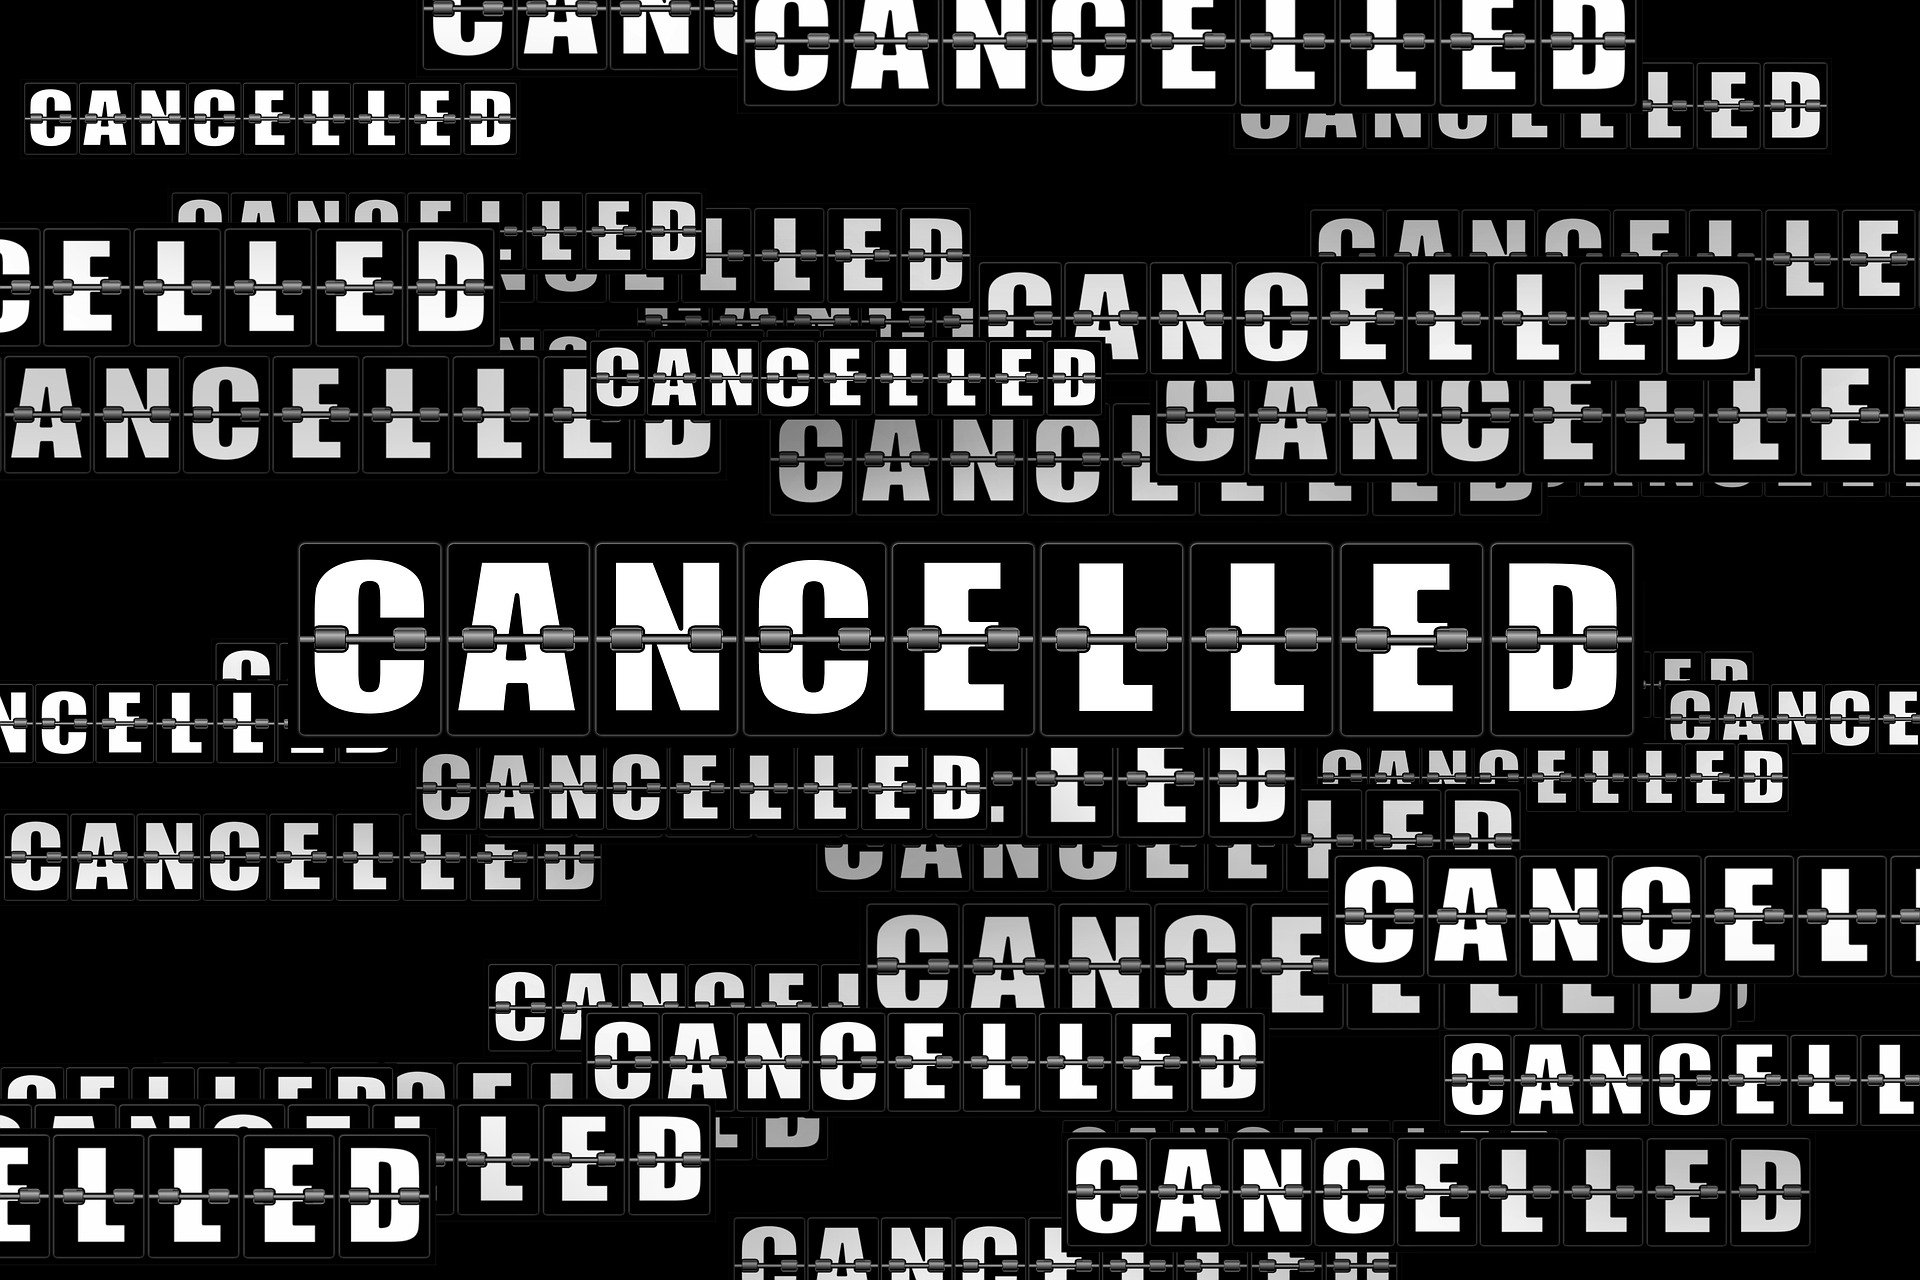 2020 November Meeting cancelled